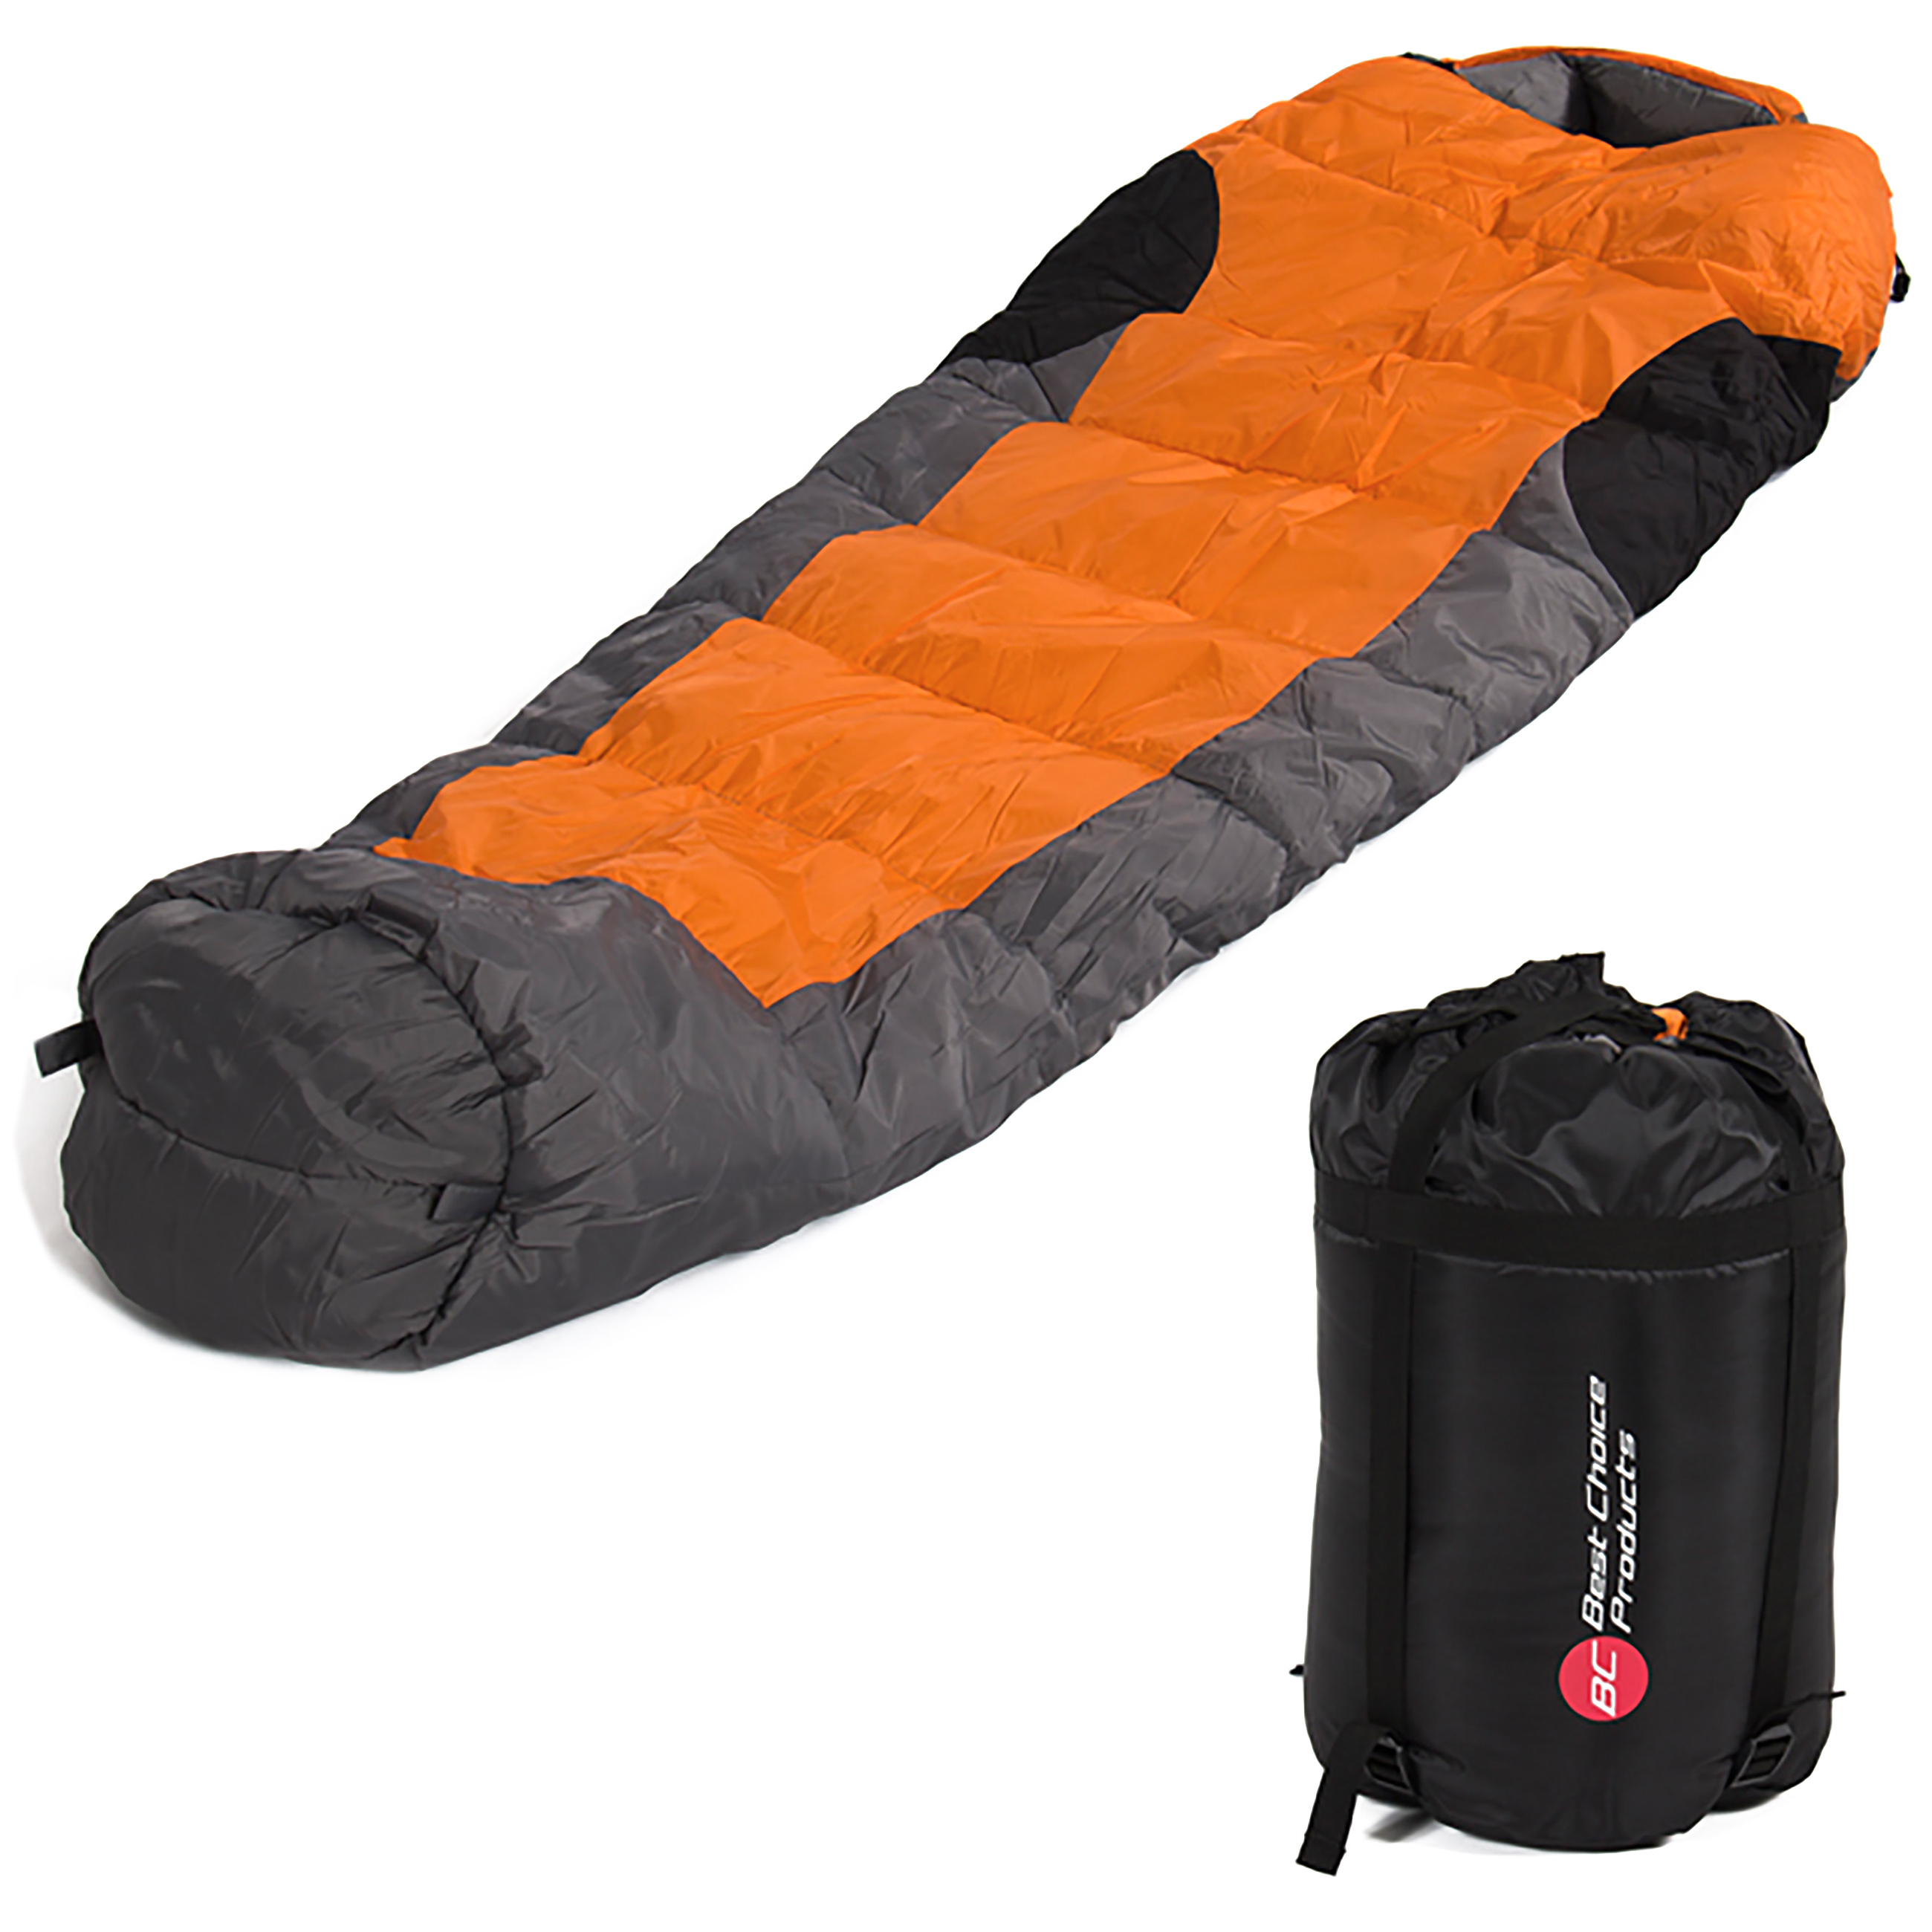 Mummy Sleeping Bag 5F -15C Camping Hiking With Carrying Case Brand New by